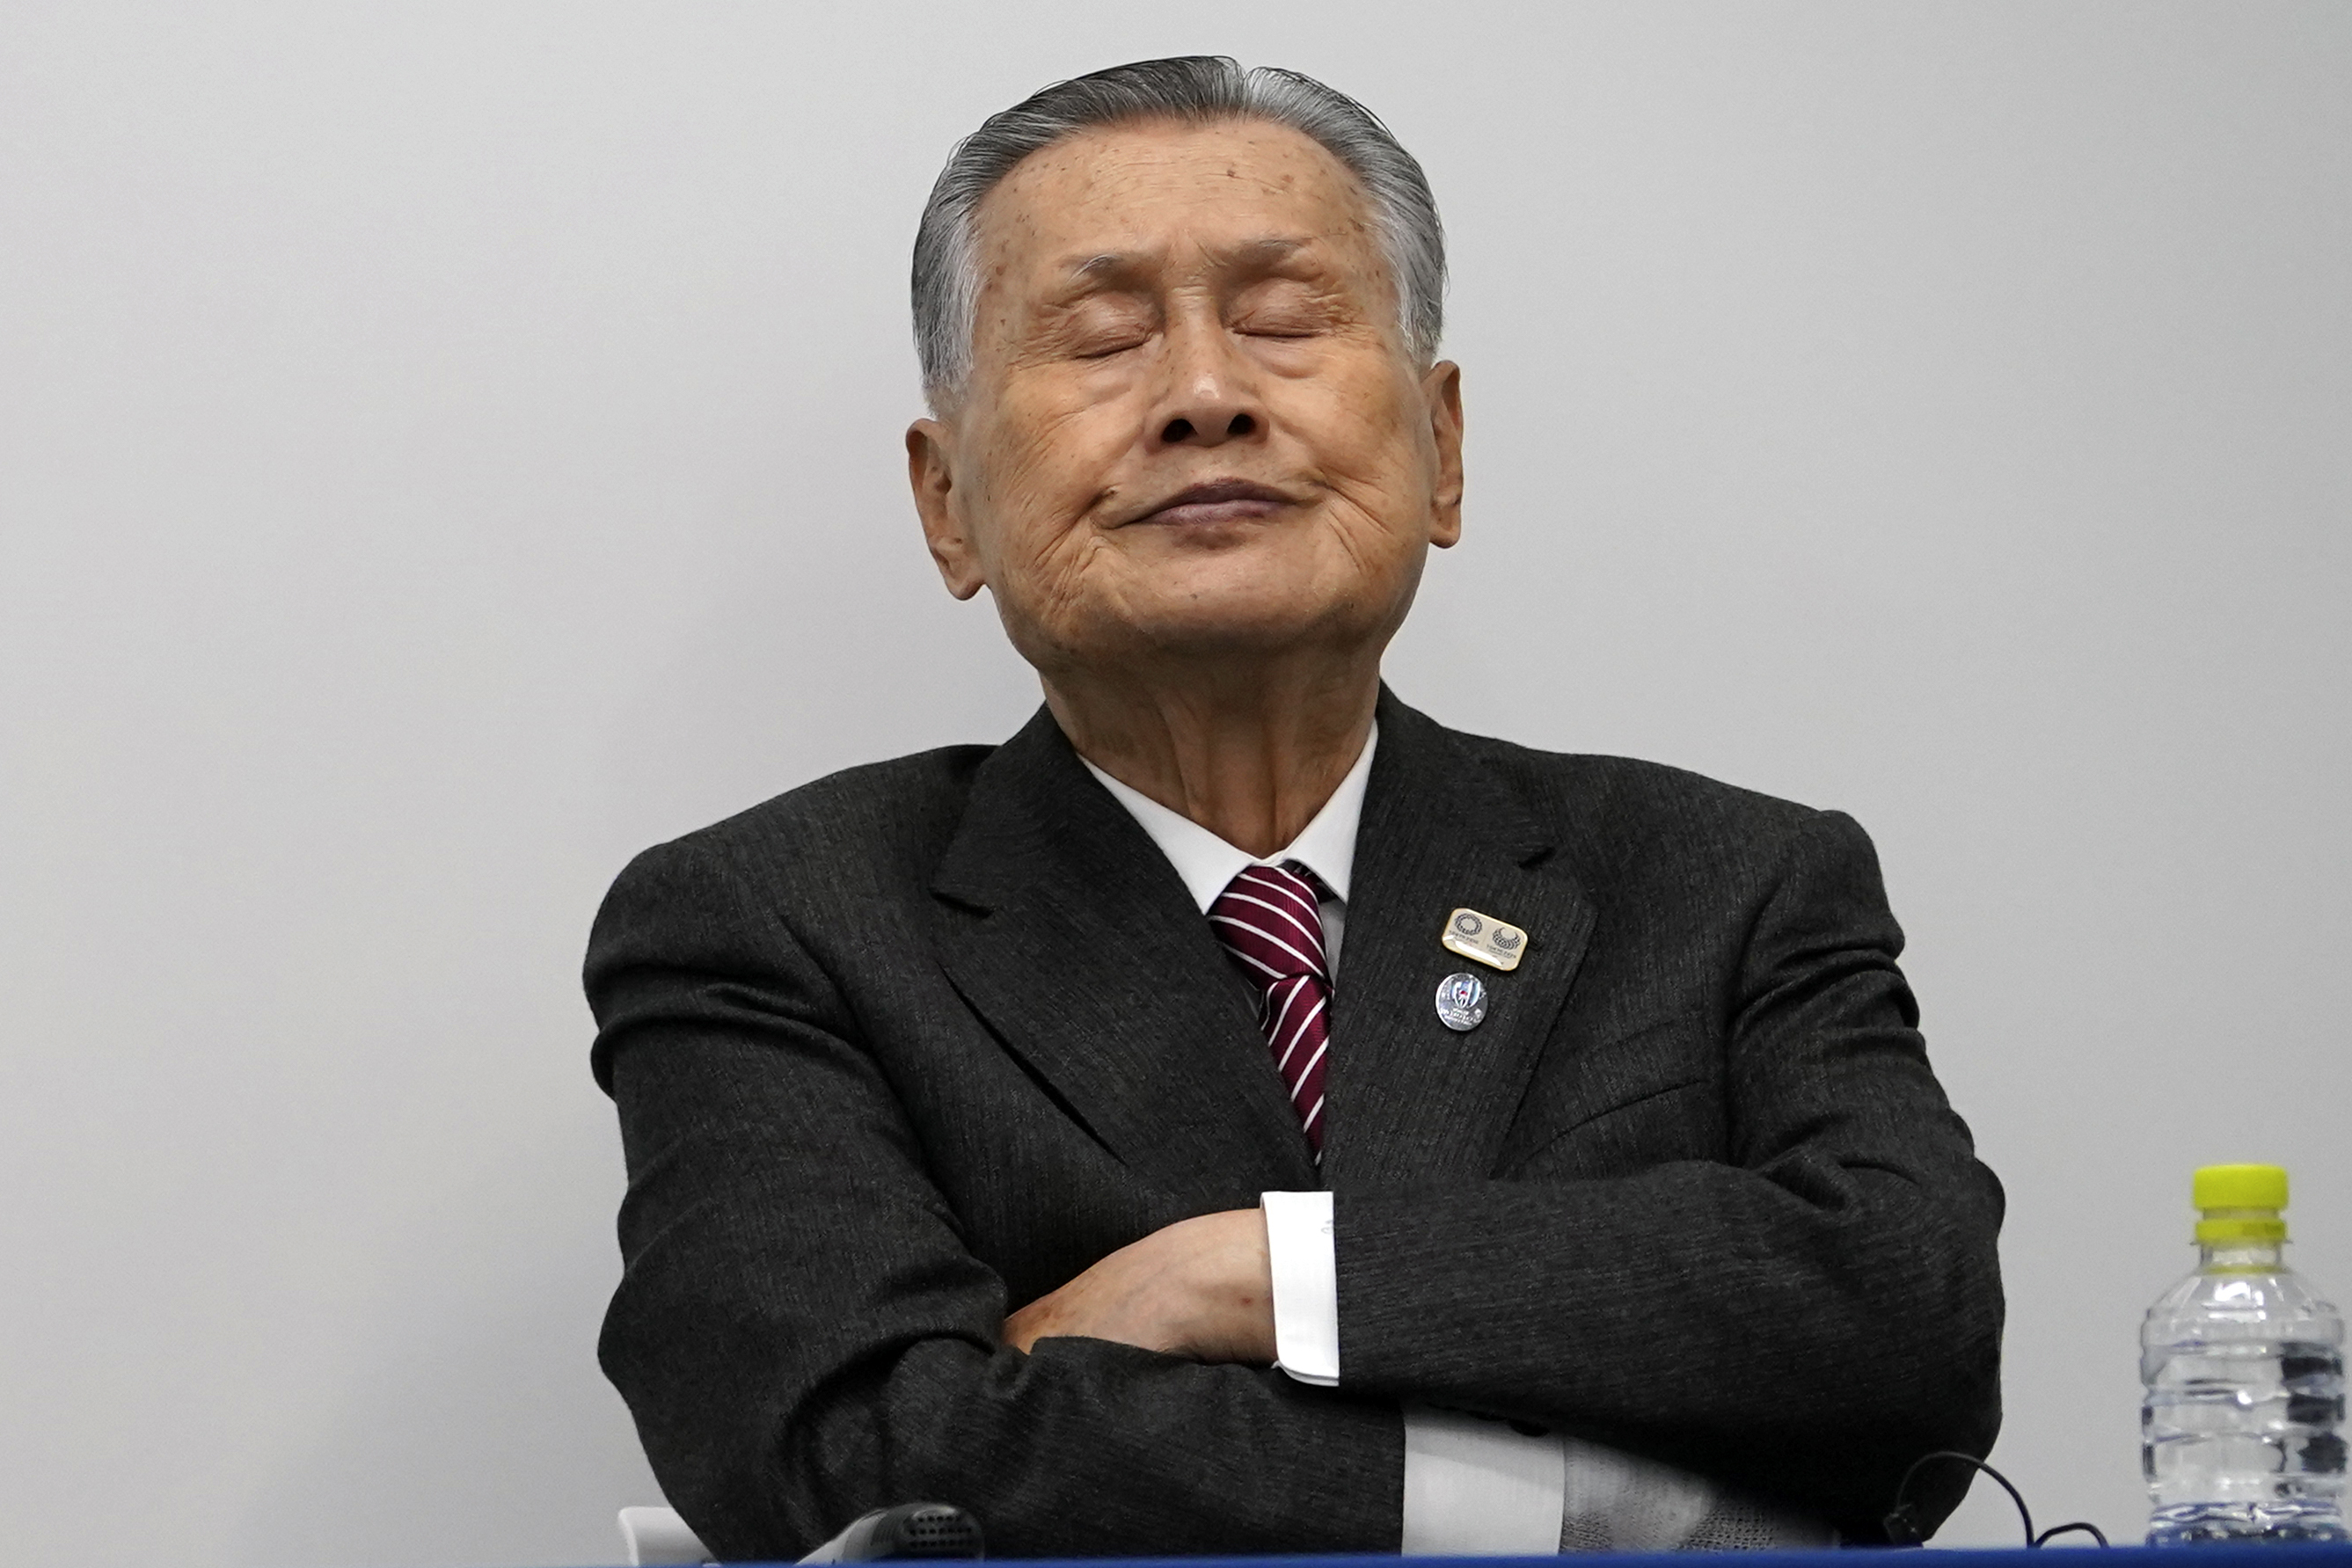 Tokyo 2020 Olympics chief Yoshiro Mori listens to questions from journalist during a press conference Monday, March 23, 2020, in Tokyo. As infections soared in Europe and the United States and the world economy spiraled downward, Japan on Monday hinted at the next possible victim of the globe-spanning coronavirus: The 2020 Tokyo Olympics. (AP Photo/Eugene Hoshiko)